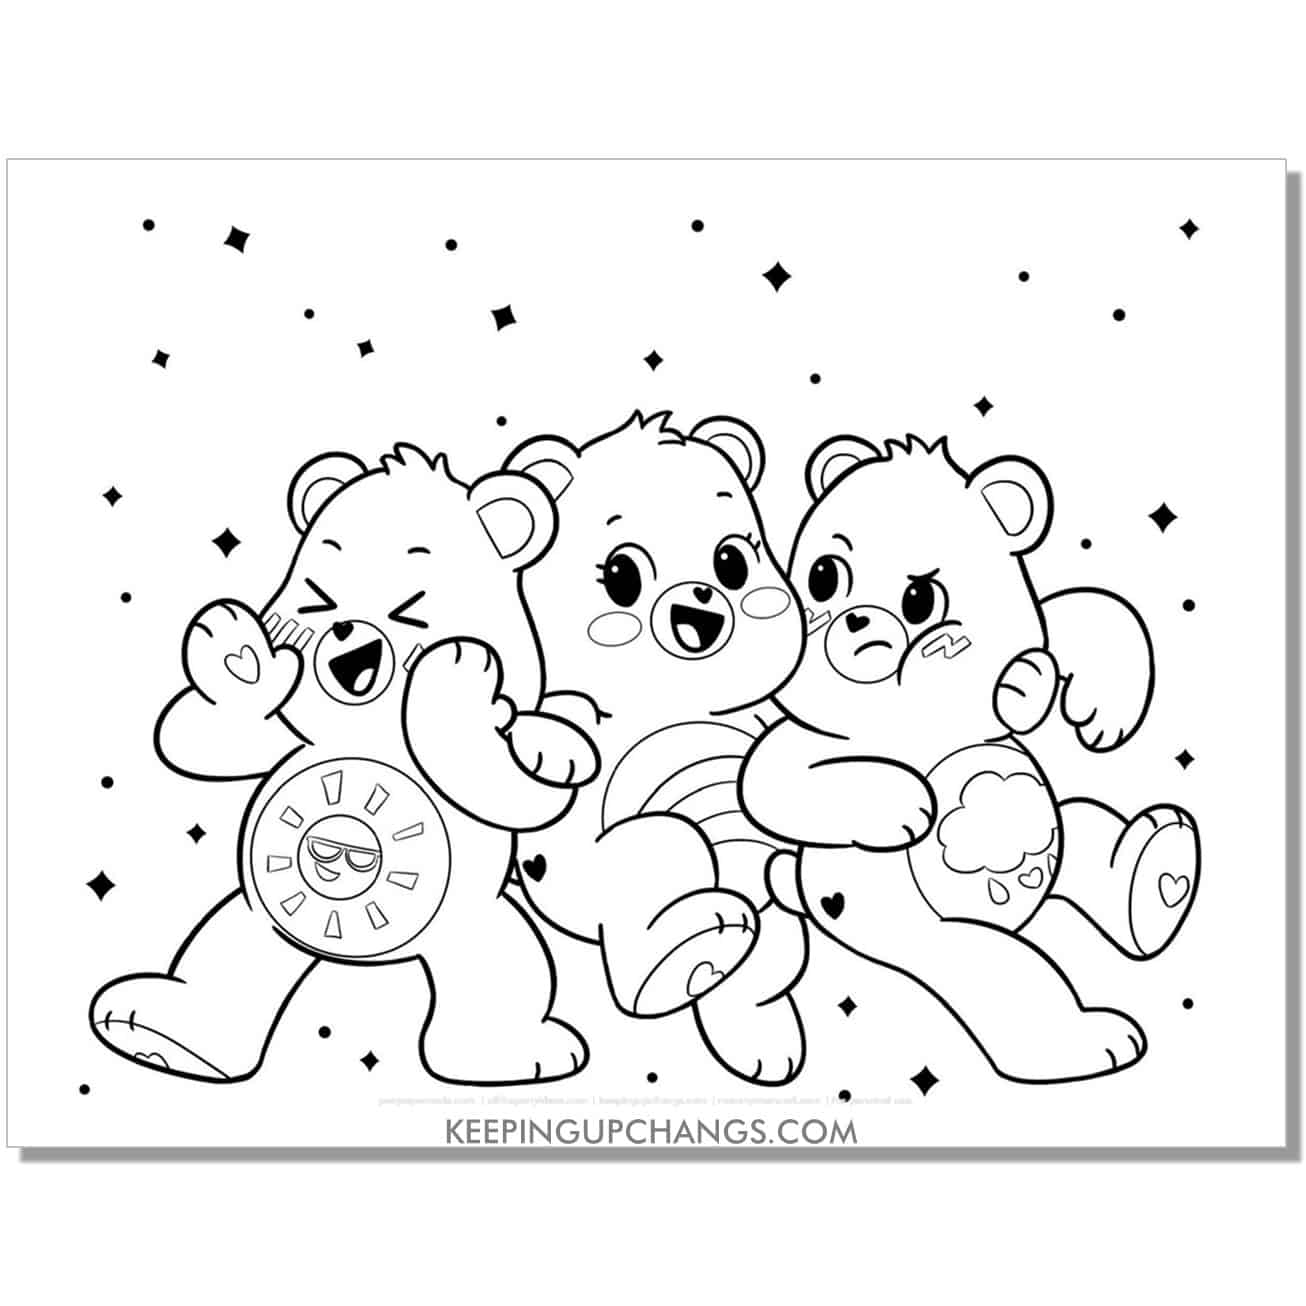 funshine, take care, and gloomylucky care bear coloring page.